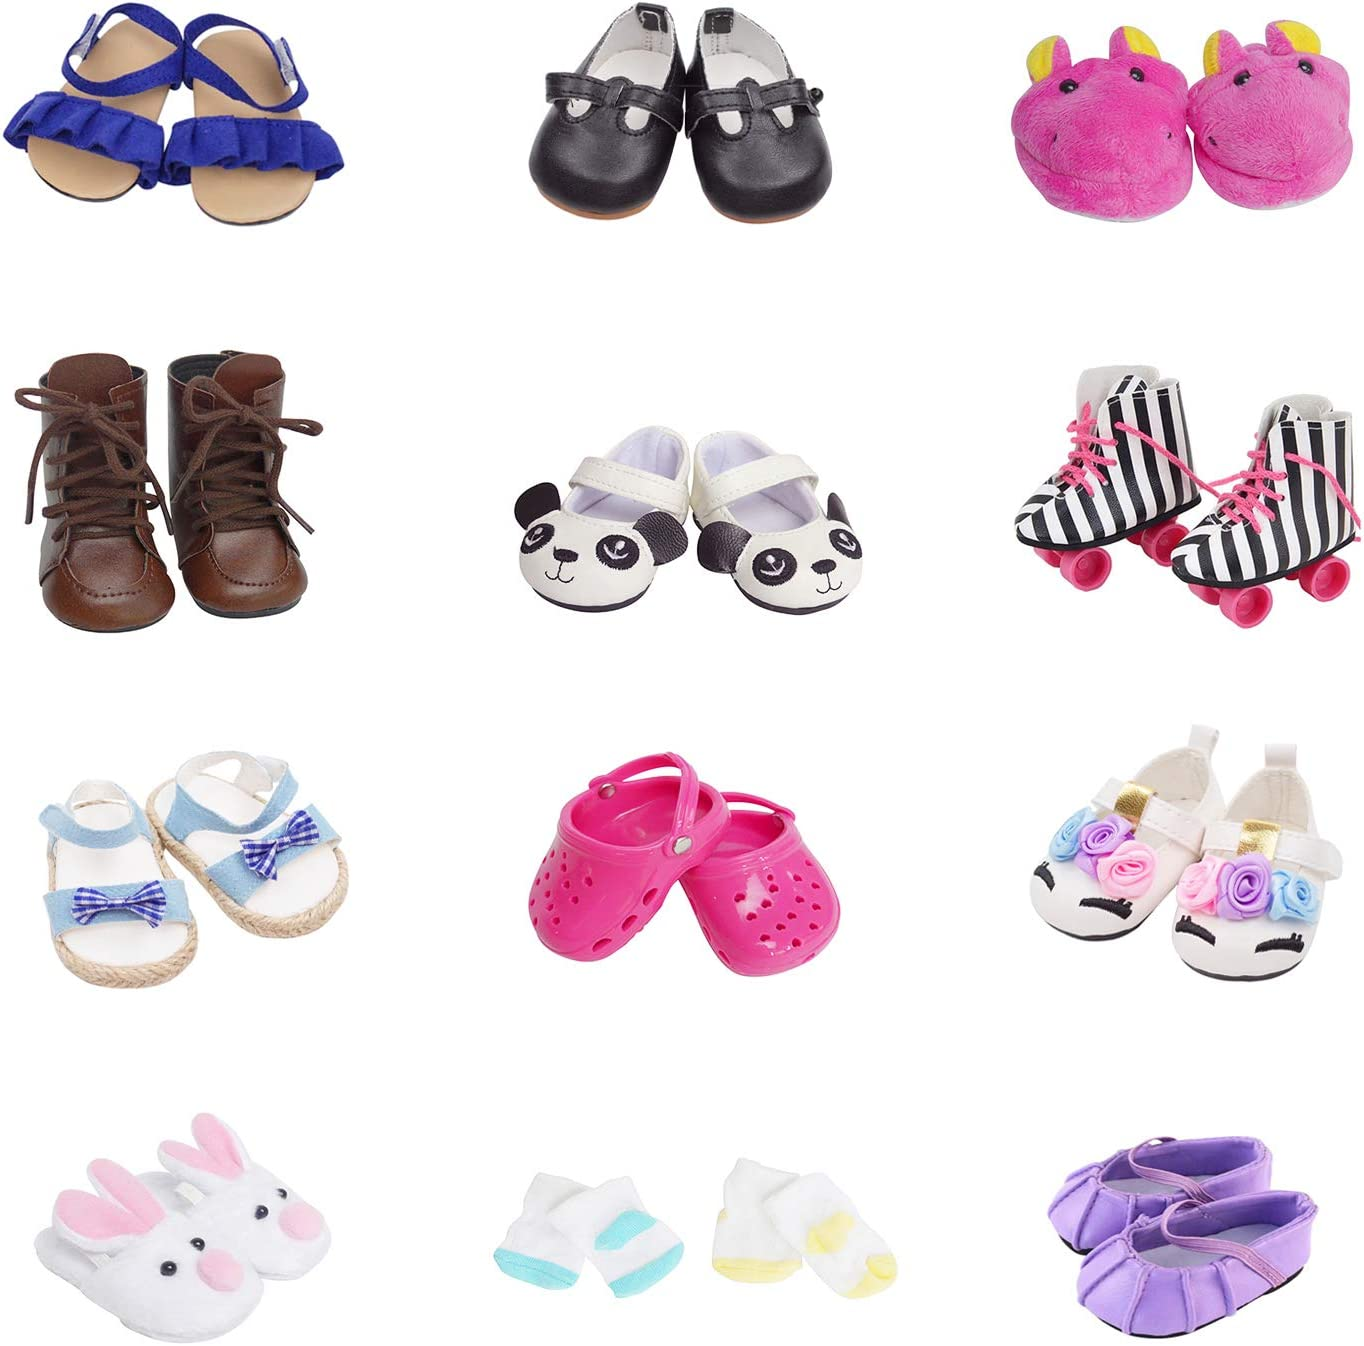 5 Pairs of Shoes + 2 Pairs of Socks Fits for 18 inch Doll Shoes American Dolls Accessories 100% Get Panda Shoes and Boots or Skates